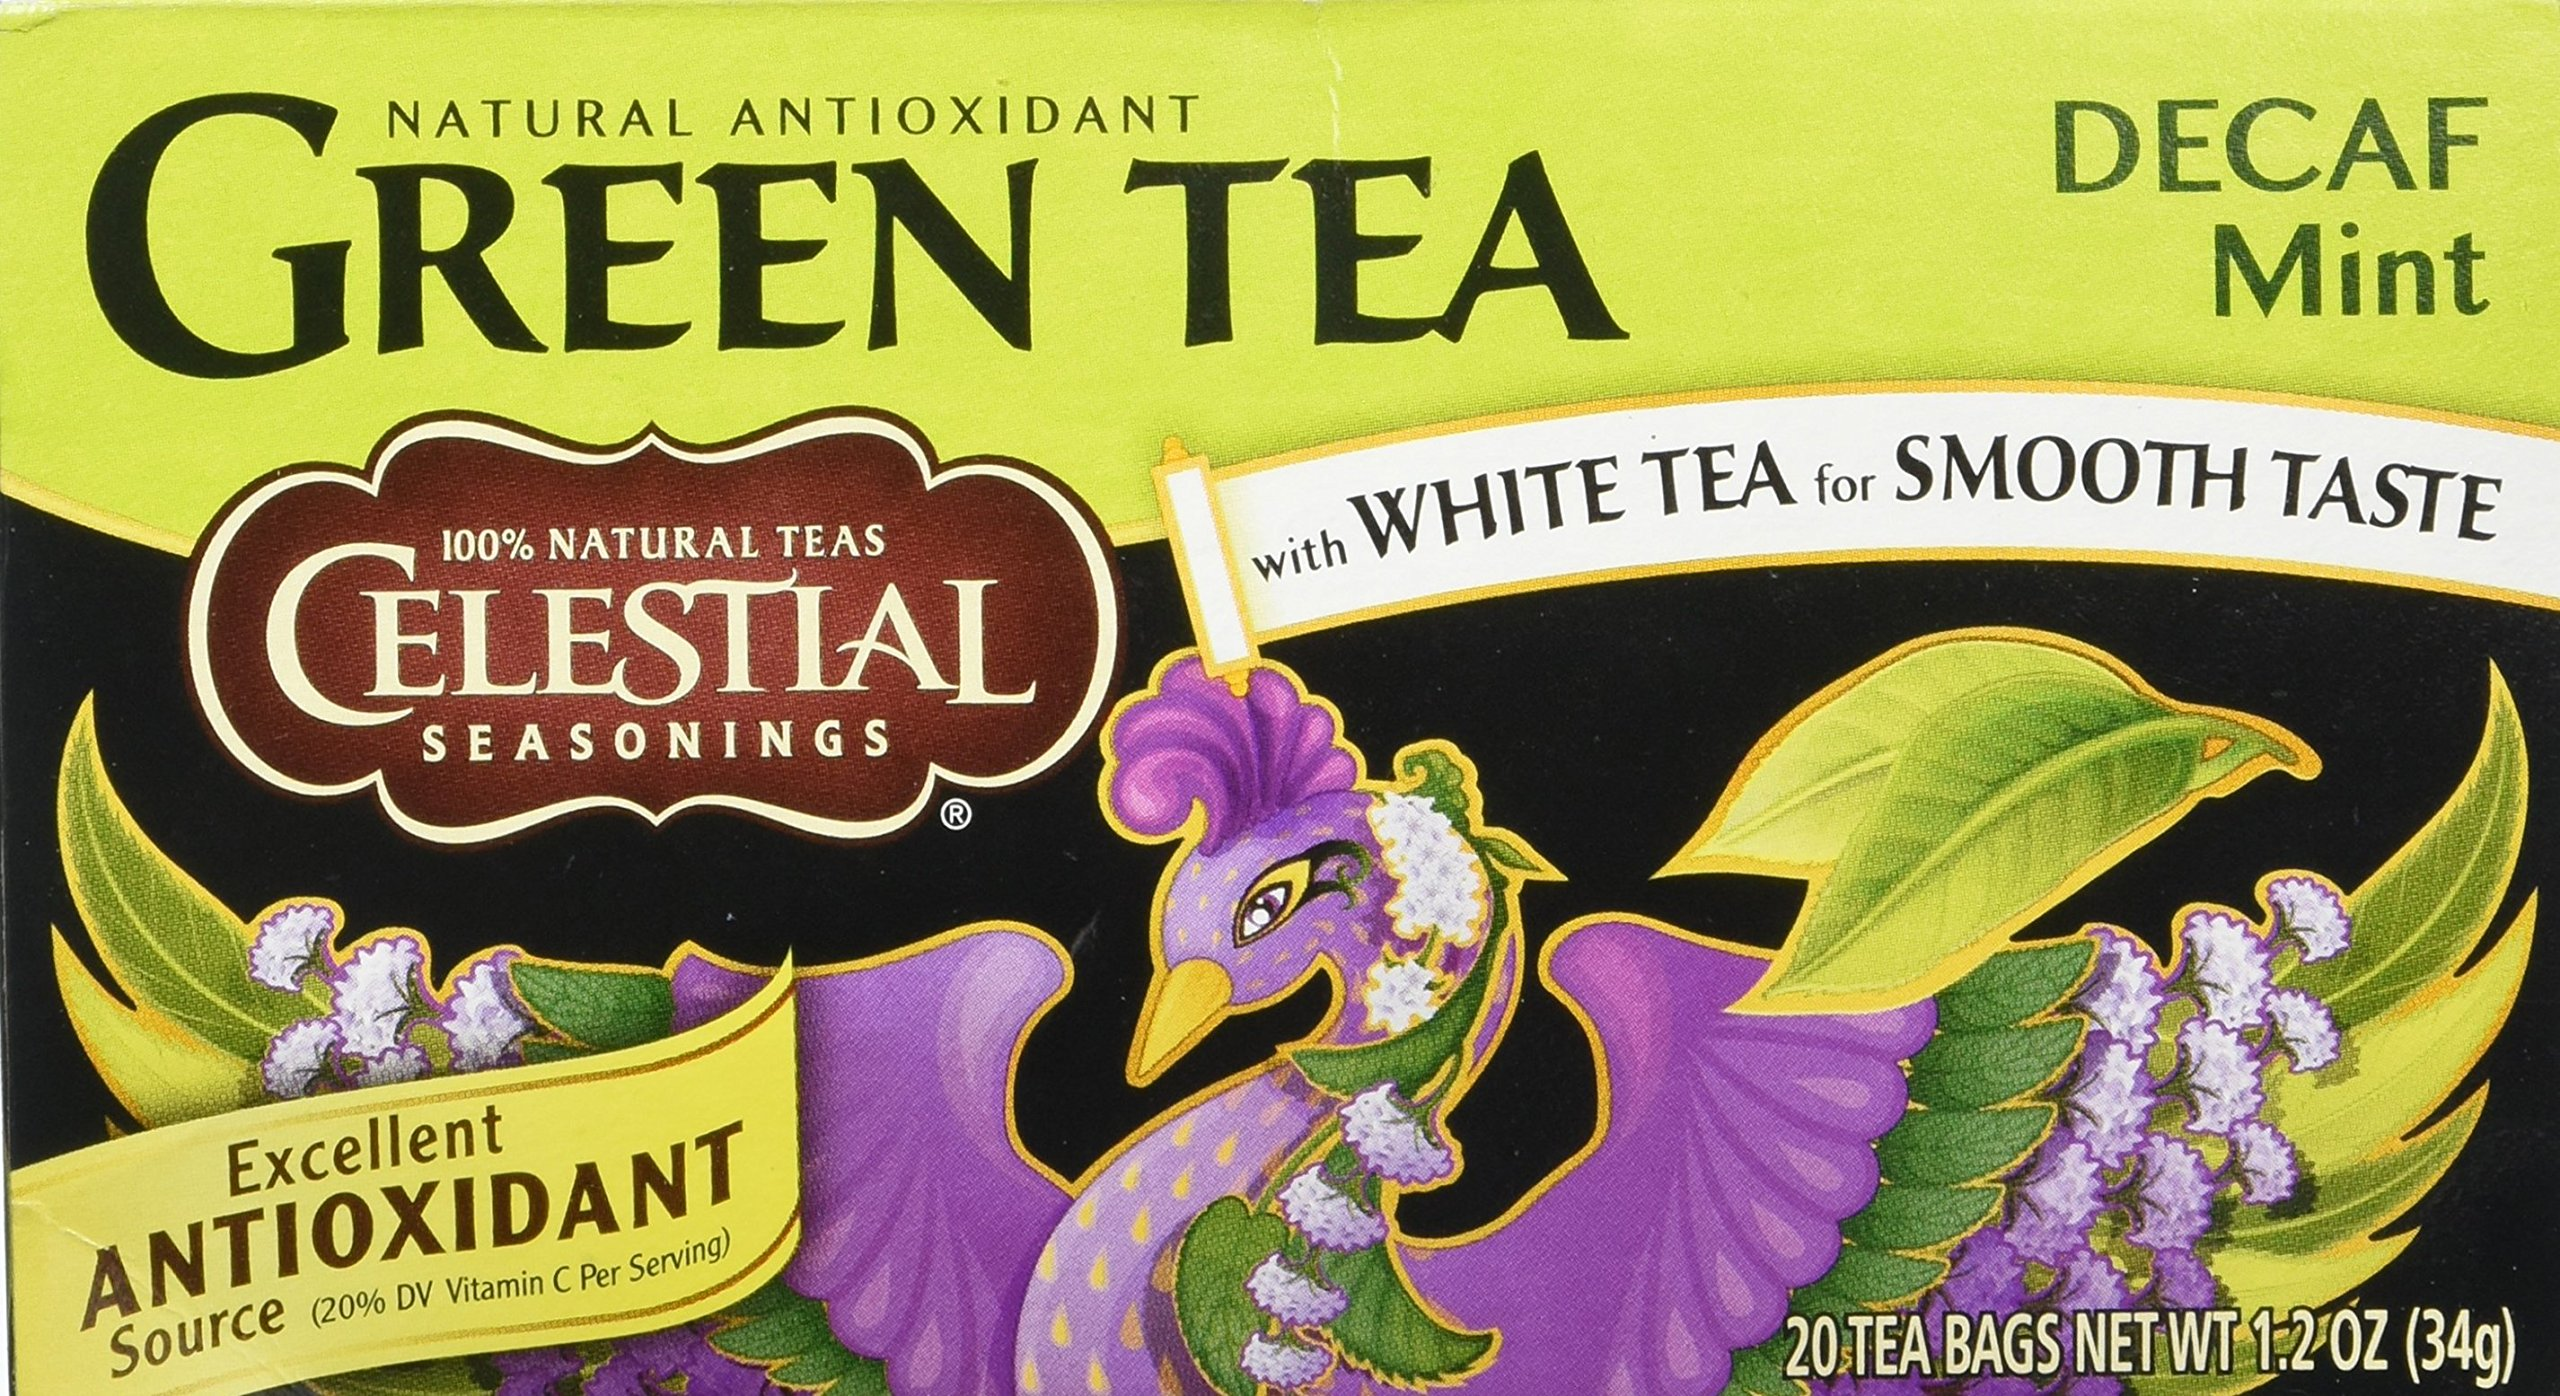 Celestial Seasonings Decaf Mint Green Tea Bags - 20 ct